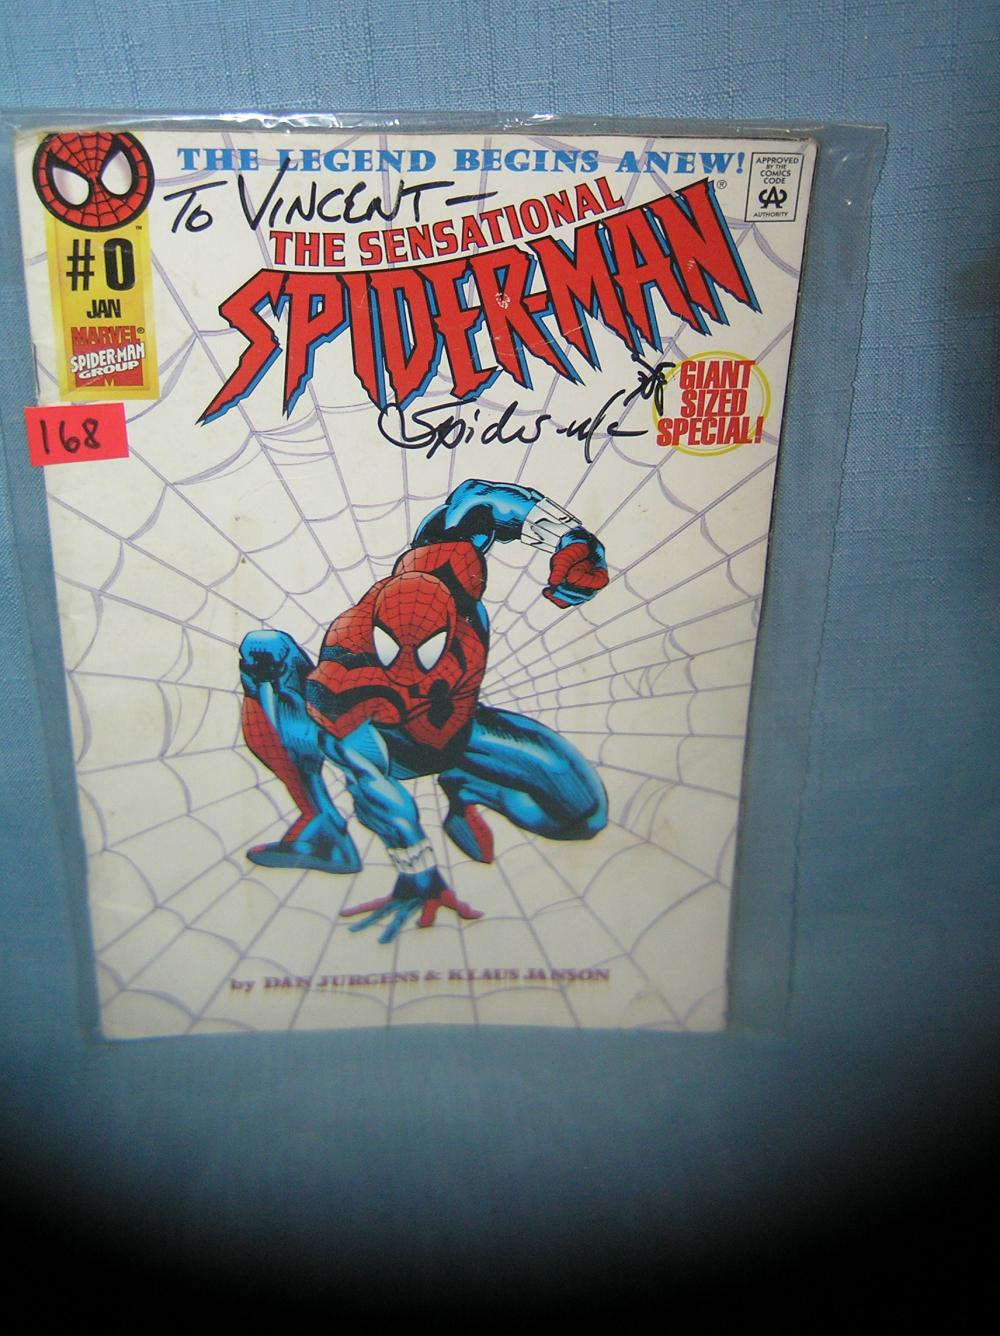 VINTAGE AUTOGRAPHED MARVEL SPIDERMAN COMIC BOOK